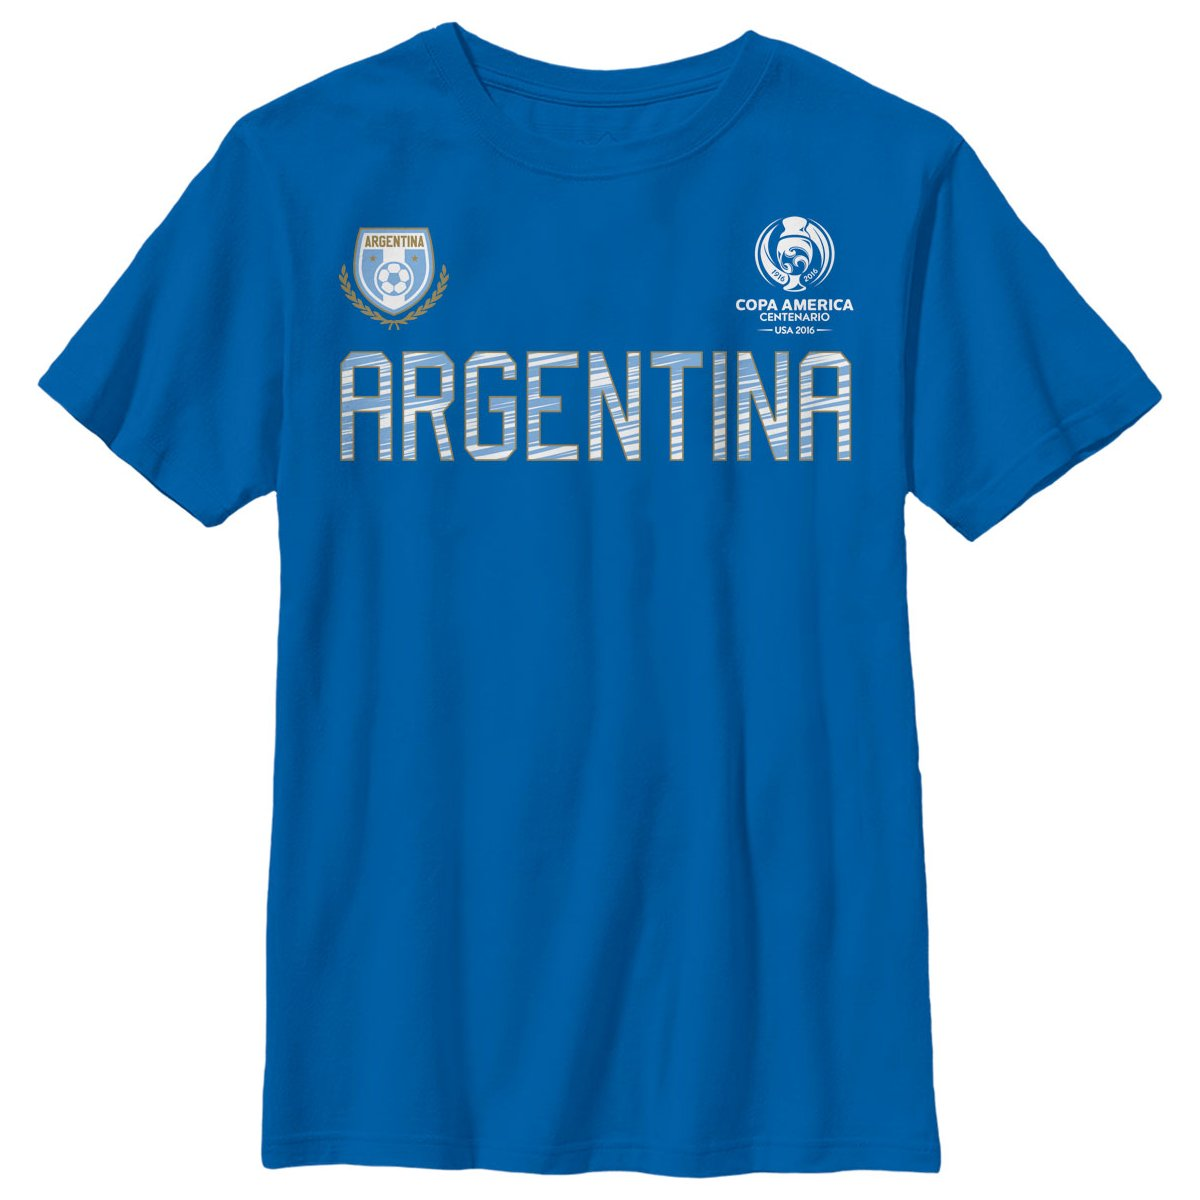 In this section you will find all the products and clothing from Argentina's kids' selection, including Argentina football shirts kids, T-shirts, training xajk8note.ml can personalize the equipment with the name and number of your idols, or make it unique with the name you like.